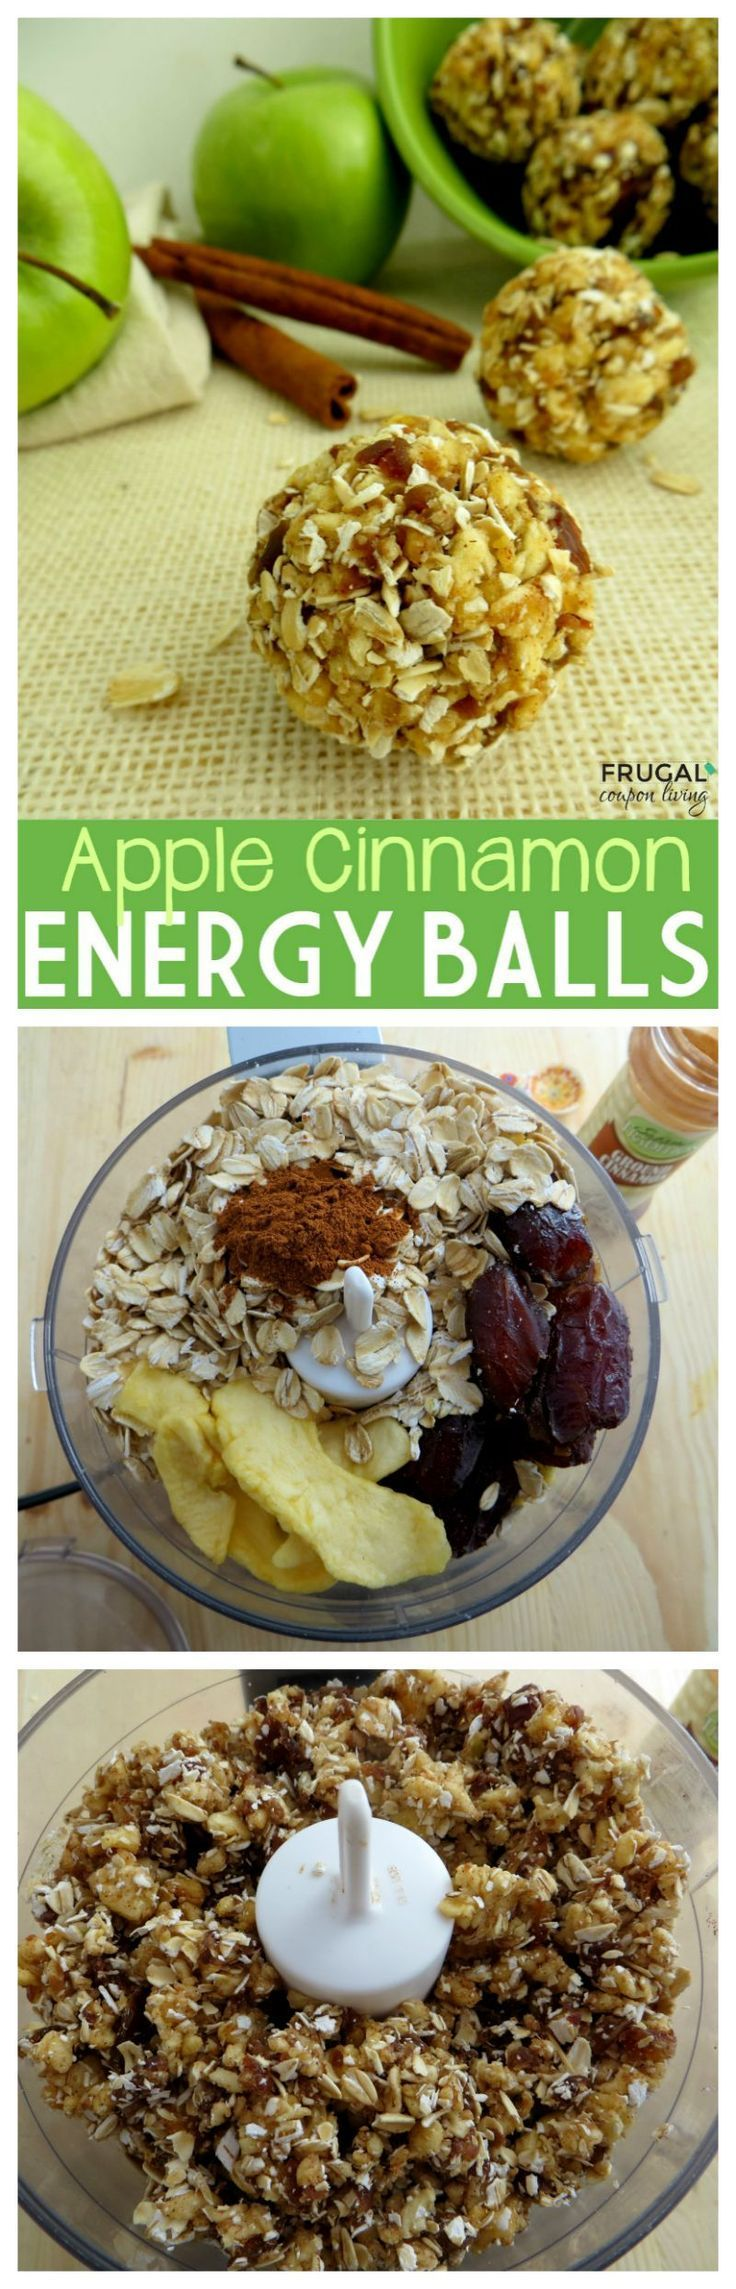 Healthy Apple Cinnamon Energy Balls & Bites with dates, apples, oats and cinnamon. Easy to make.